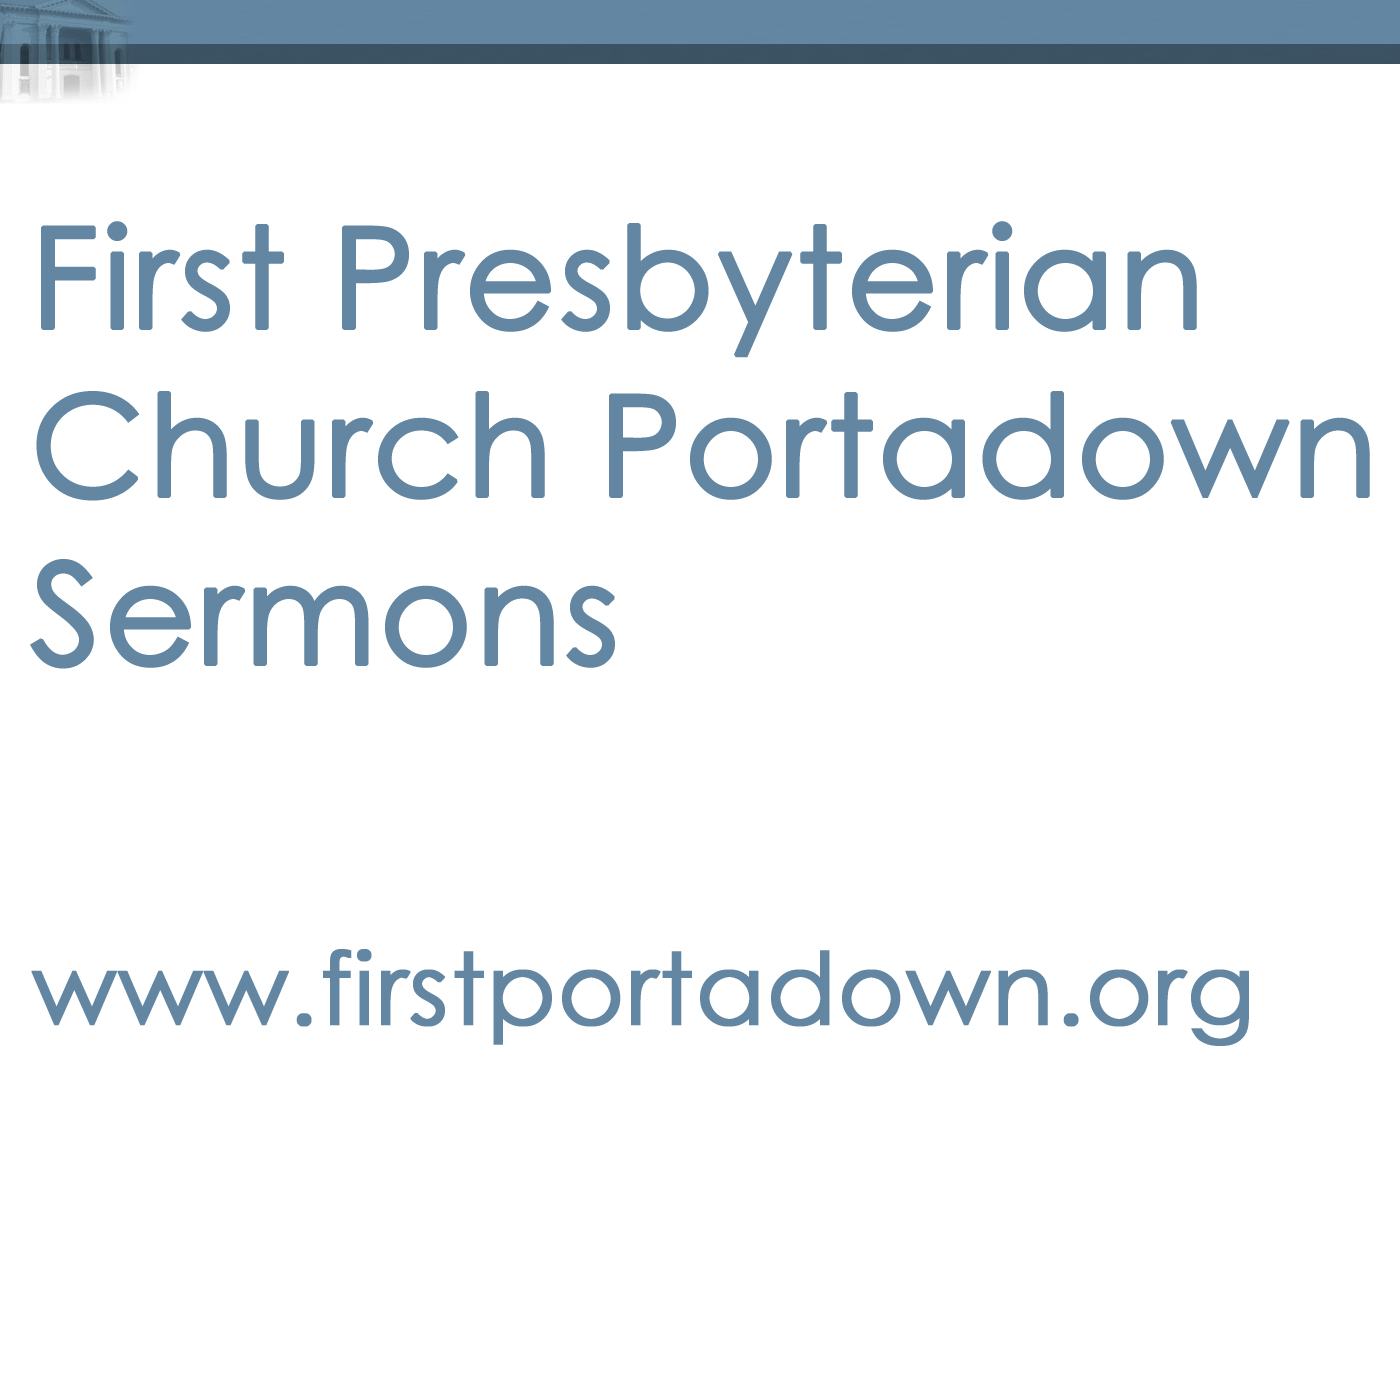 First Presbyterian Church Portadown